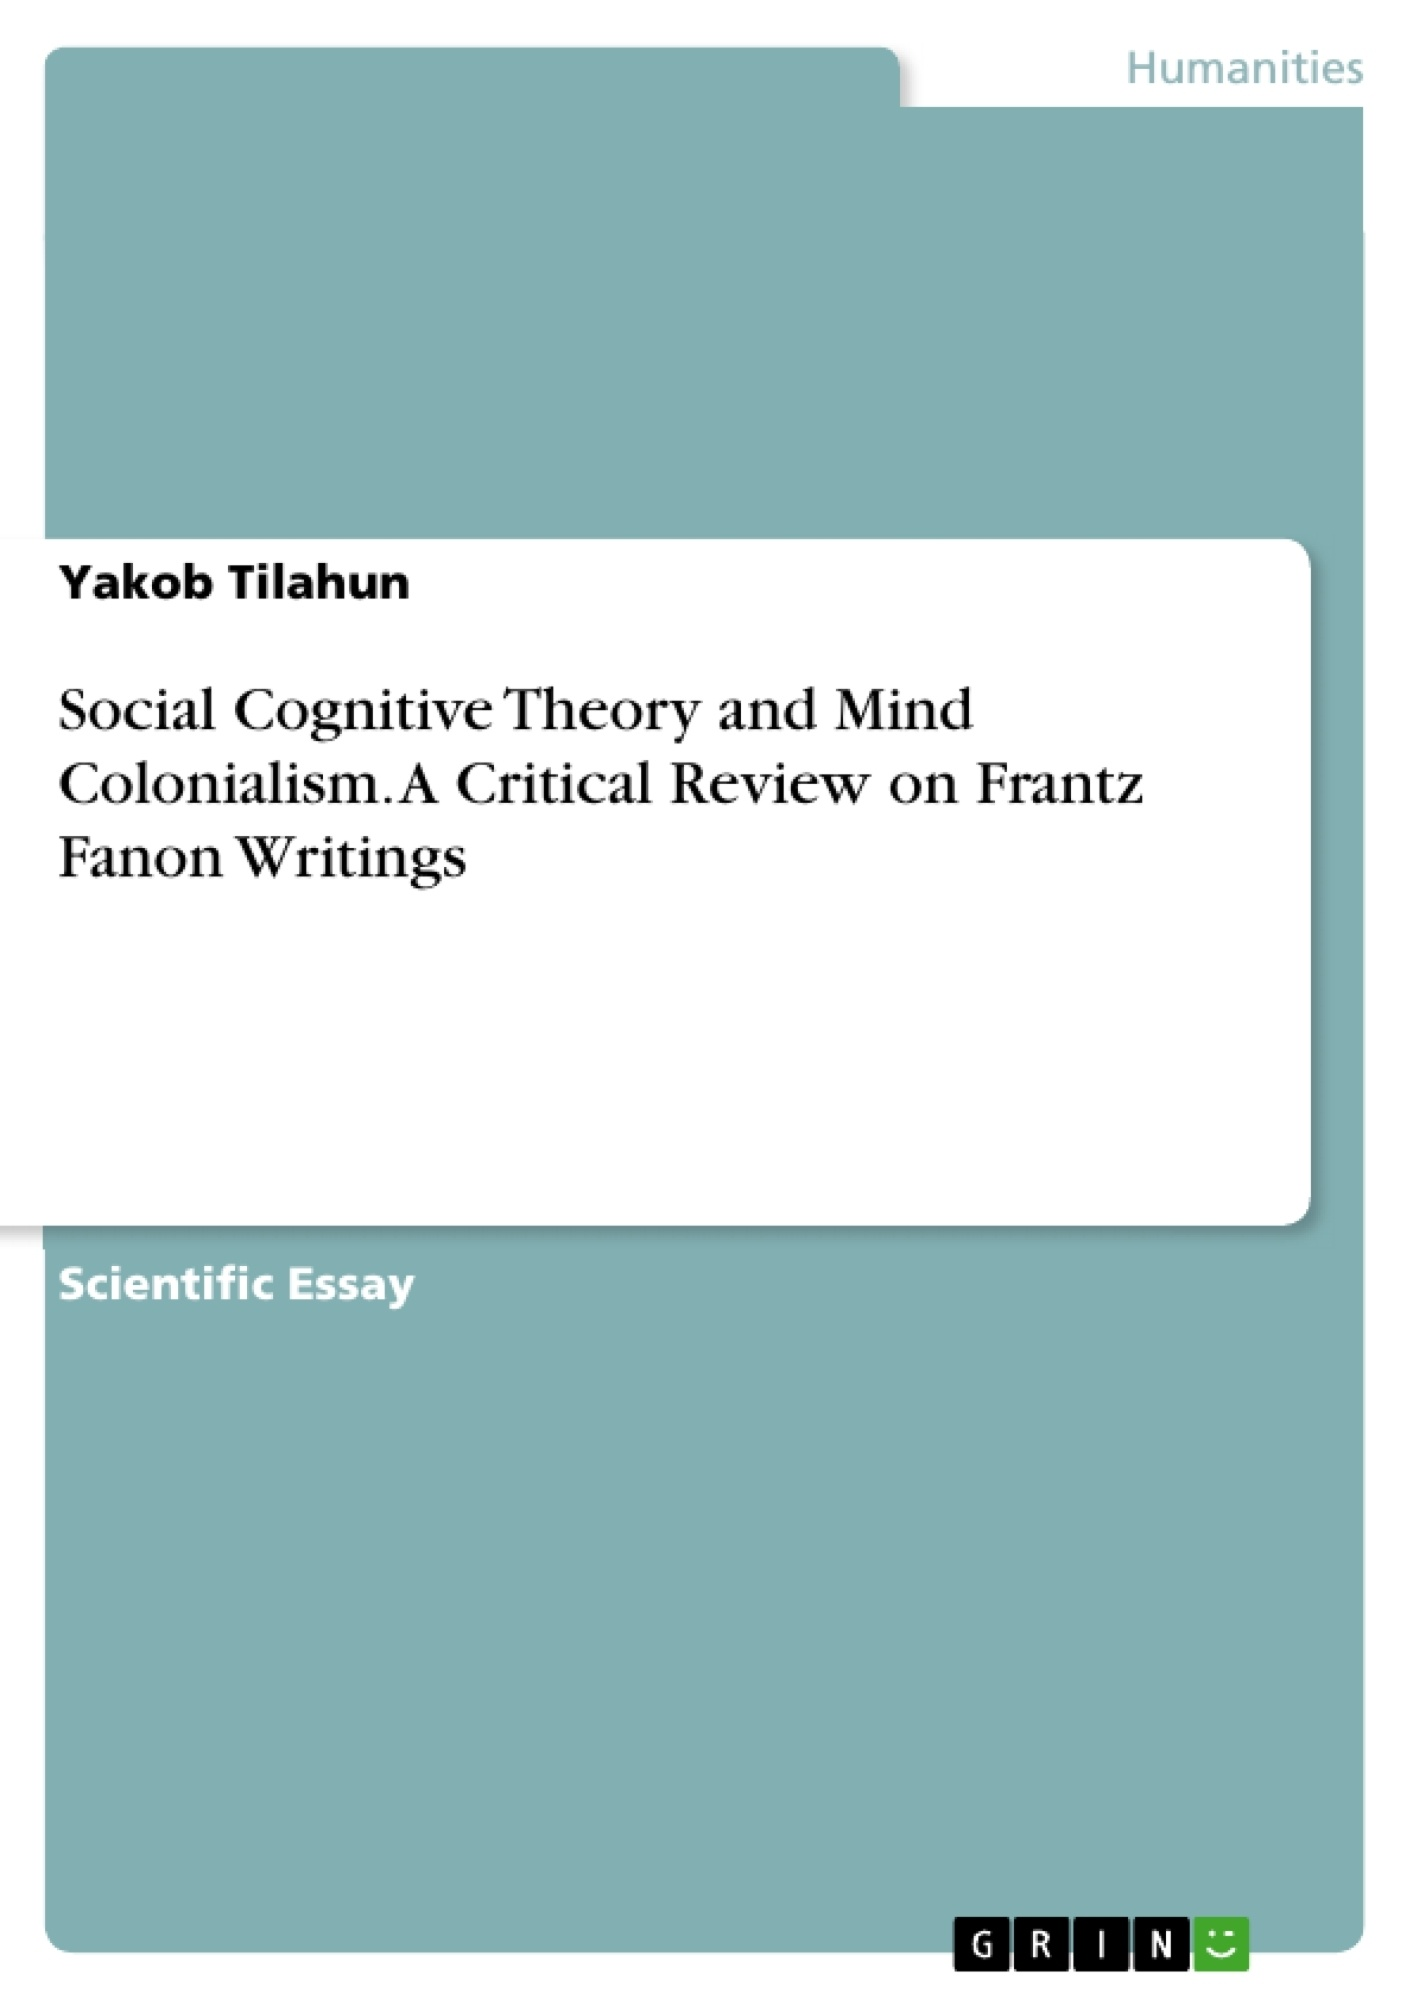 Title: Social Cognitive Theory and Mind Colonialism. A Critical Review on Frantz Fanon Writings